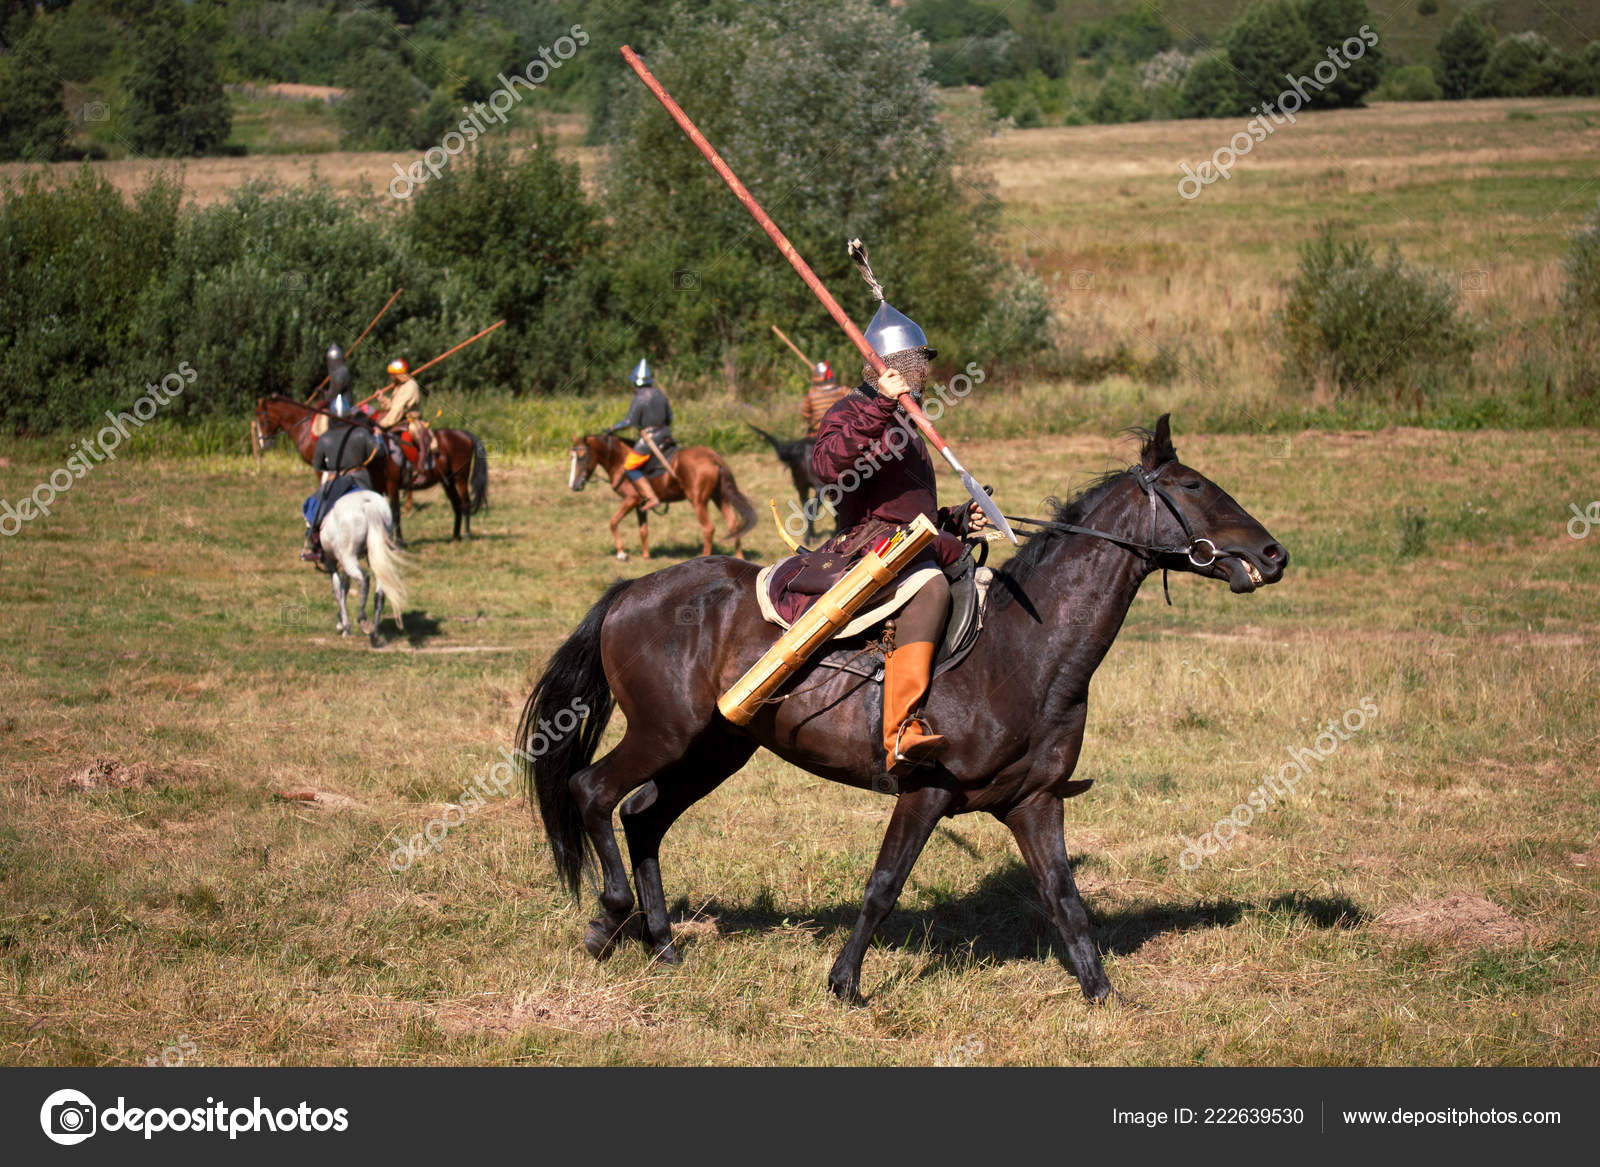 Reconstruction Medieval Armored Knight With Lance On Horse From Fantasy Equestrian Soldier In Historical Costume Rider Is In The Field Stock Editorial Photo C Valyalkin 222639530